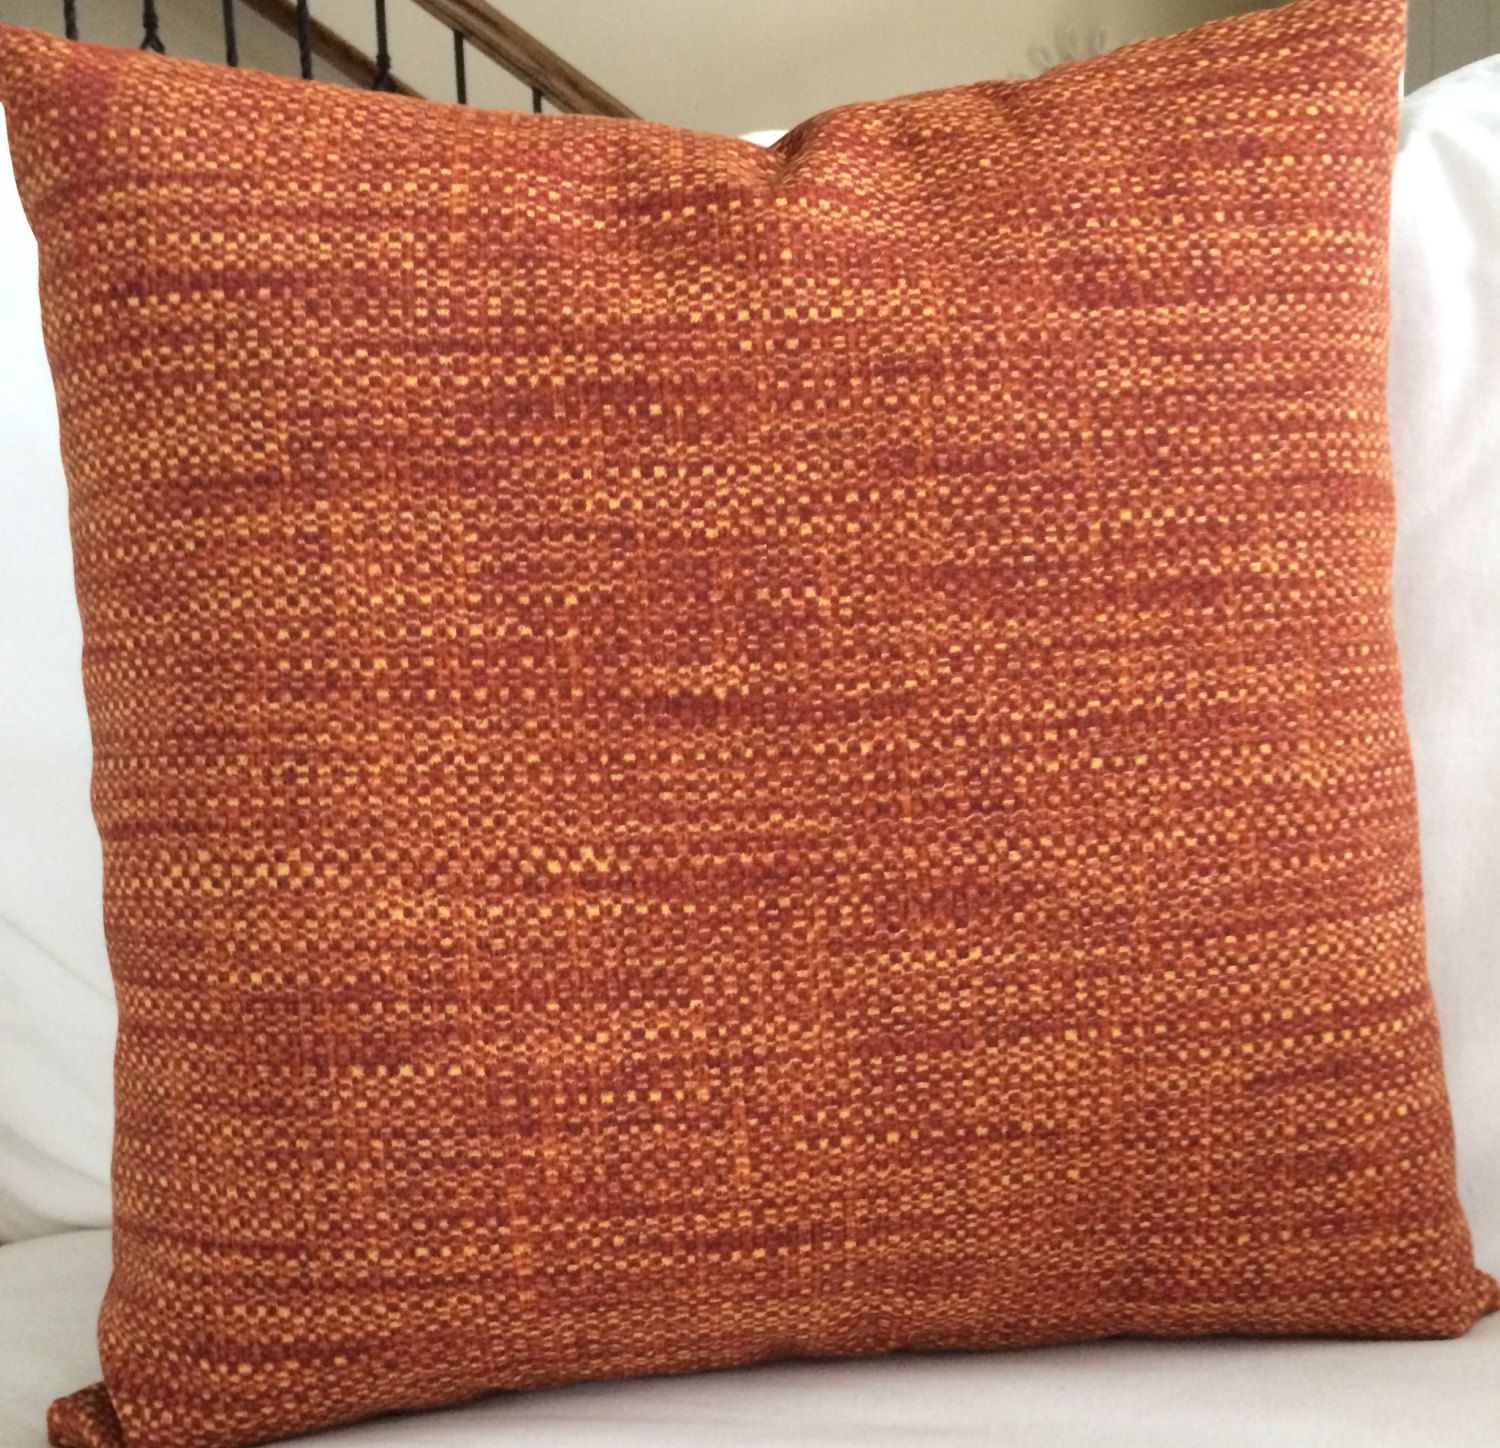 Rust Red Orange Cayenne Outdoor Throw Pillow Cushion Cover Coastal